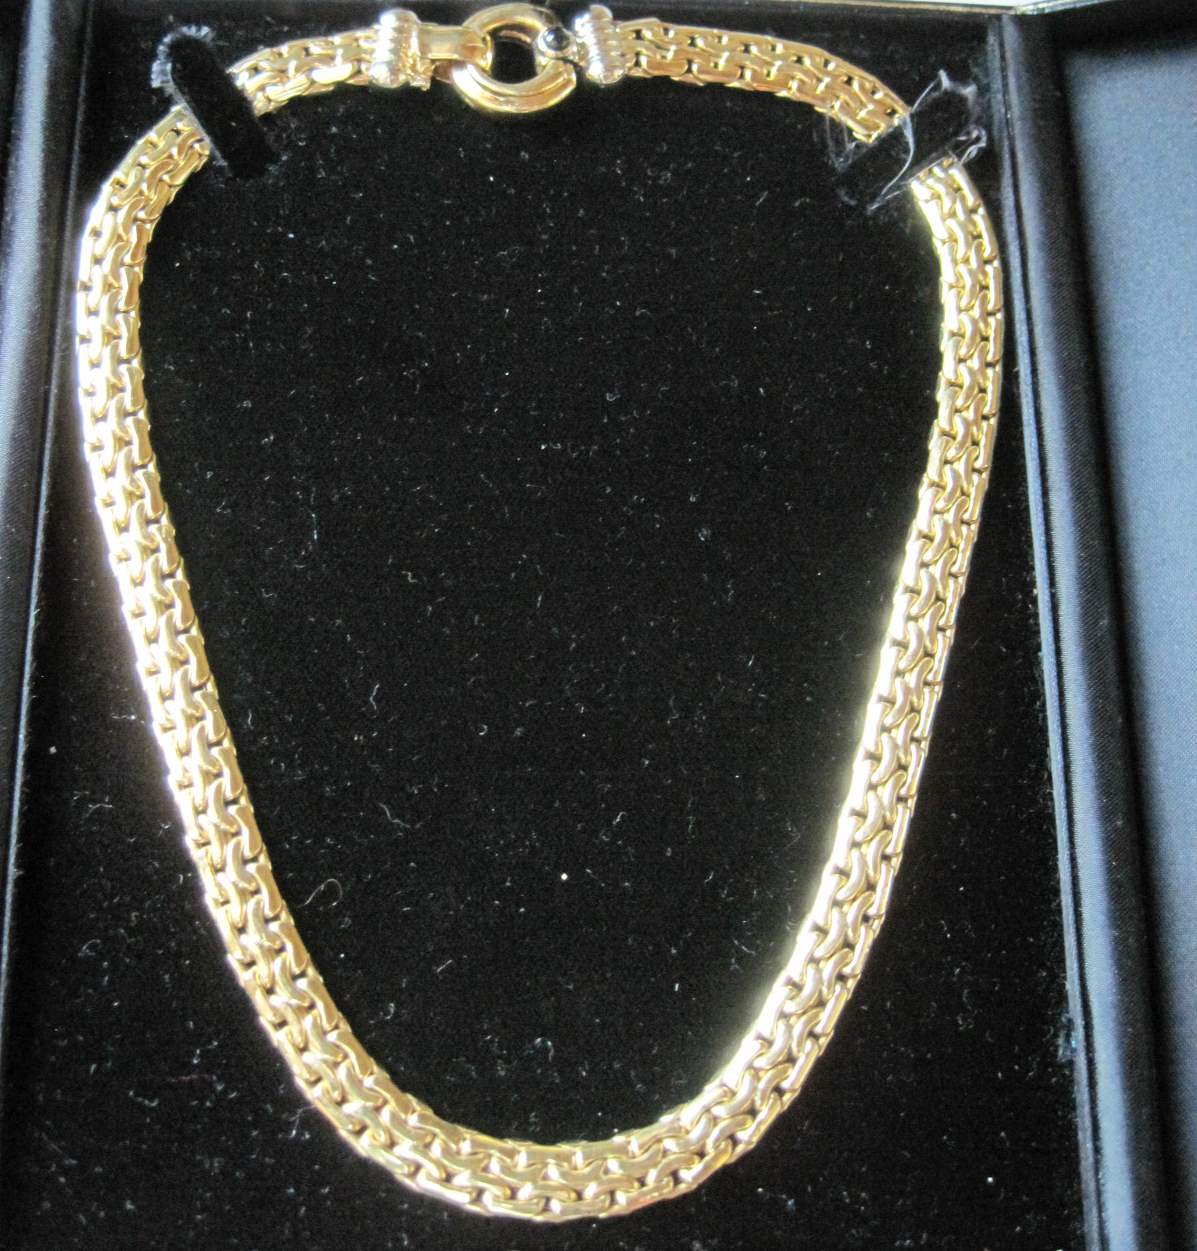 Lot 42 - 18 kt yellow gold necklace in case - Net weight: 46 g - - Collier en or jaune 18 ct [...]